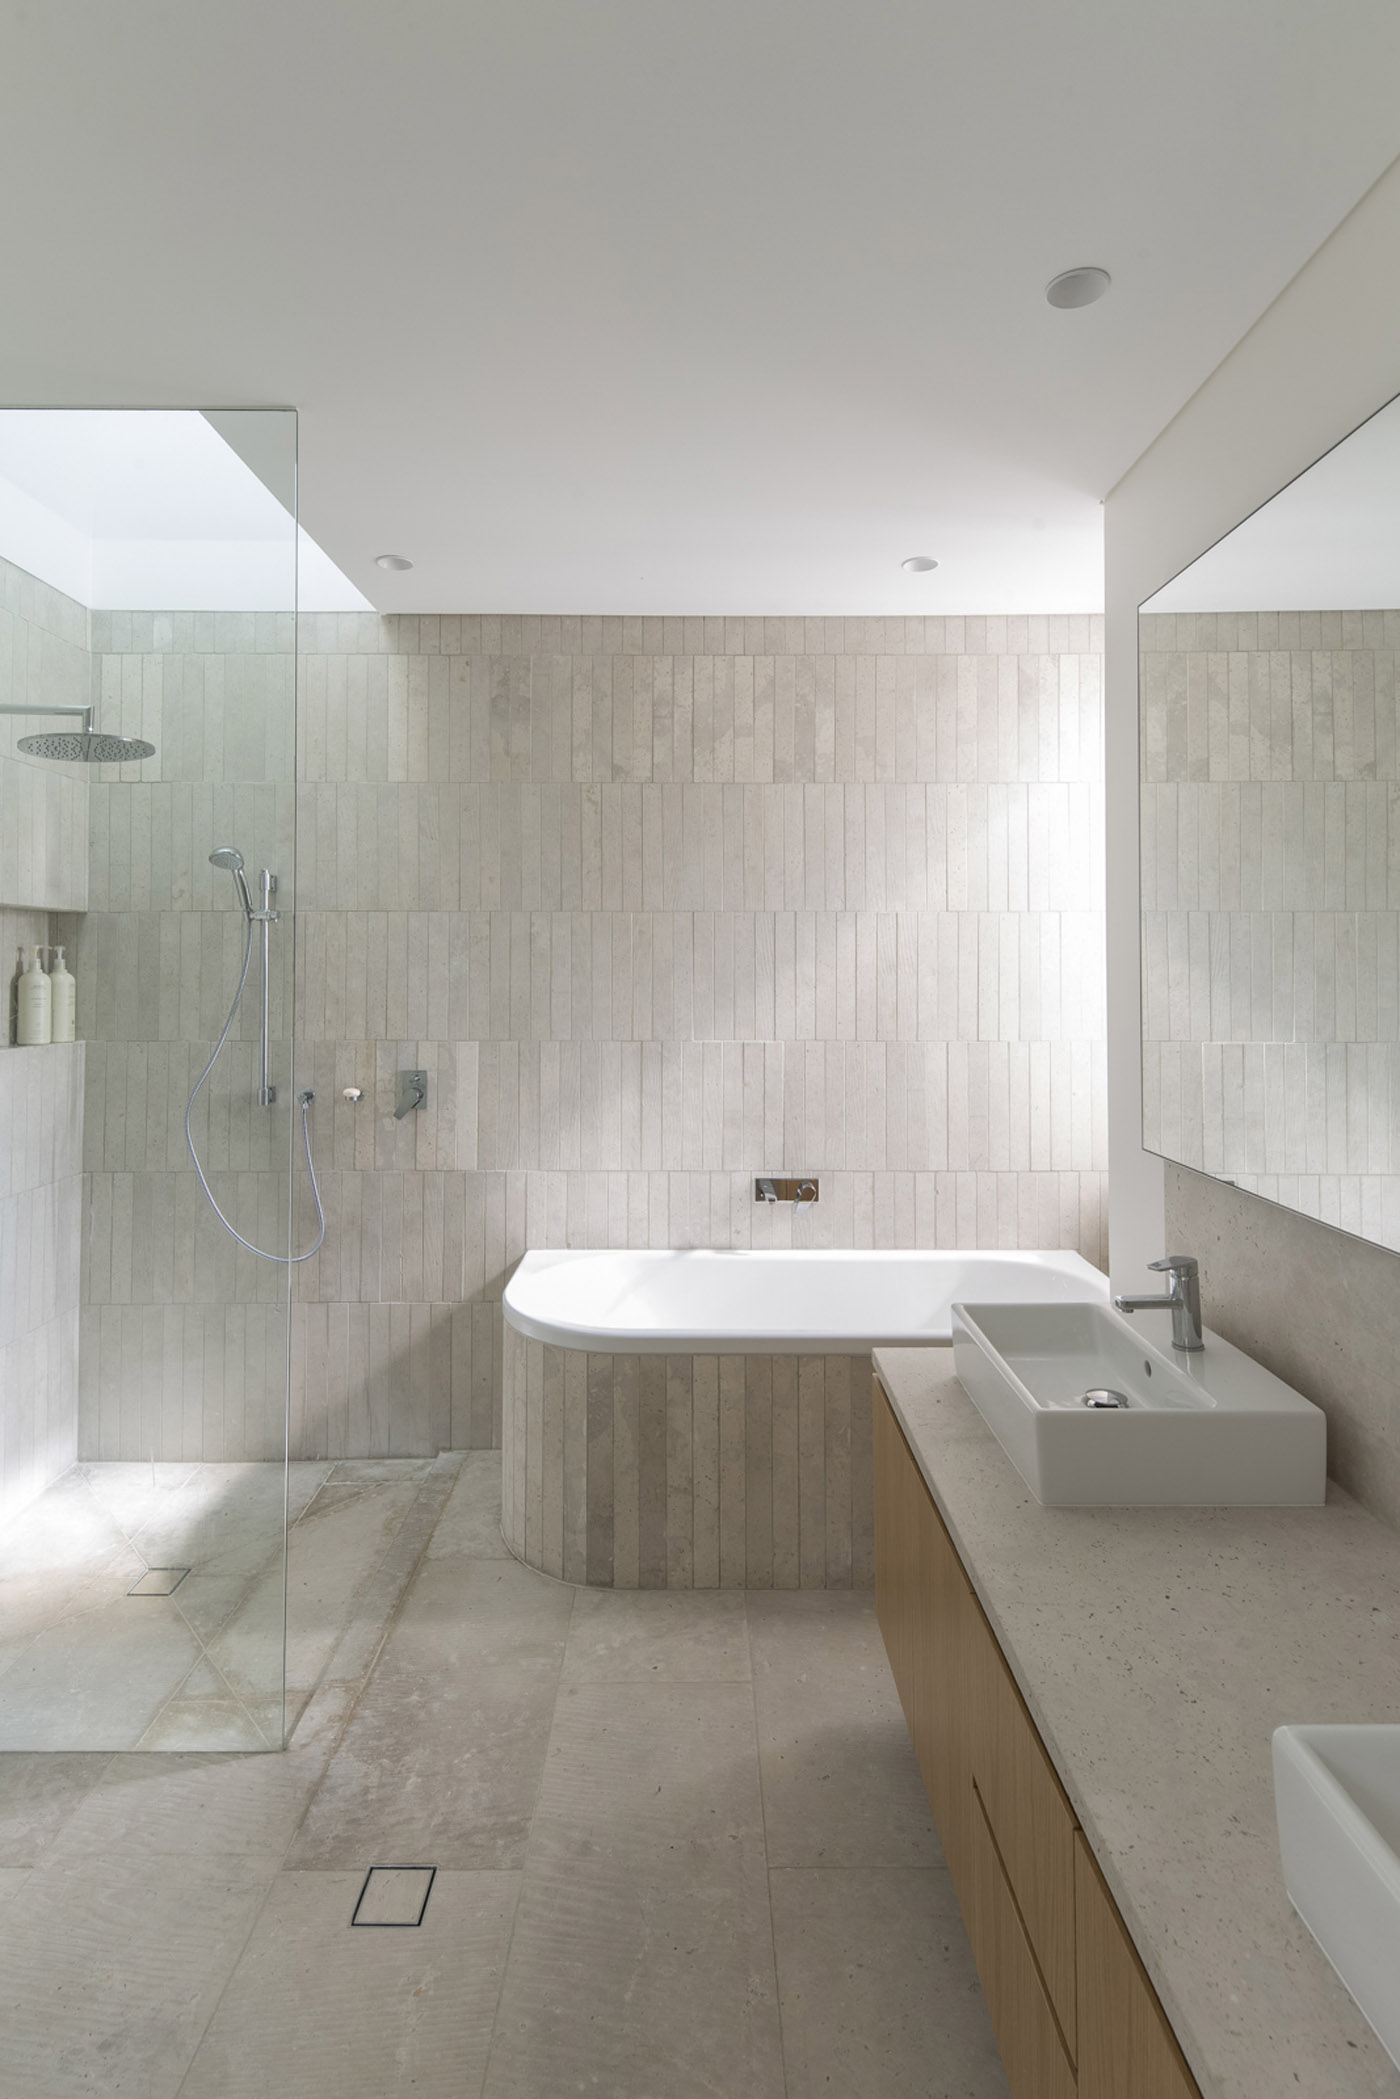 Gandha Kariappa Terrace by Sydney residential architects Sam Crawford Architects. Light filled bathroom with subtle variations of stone tile